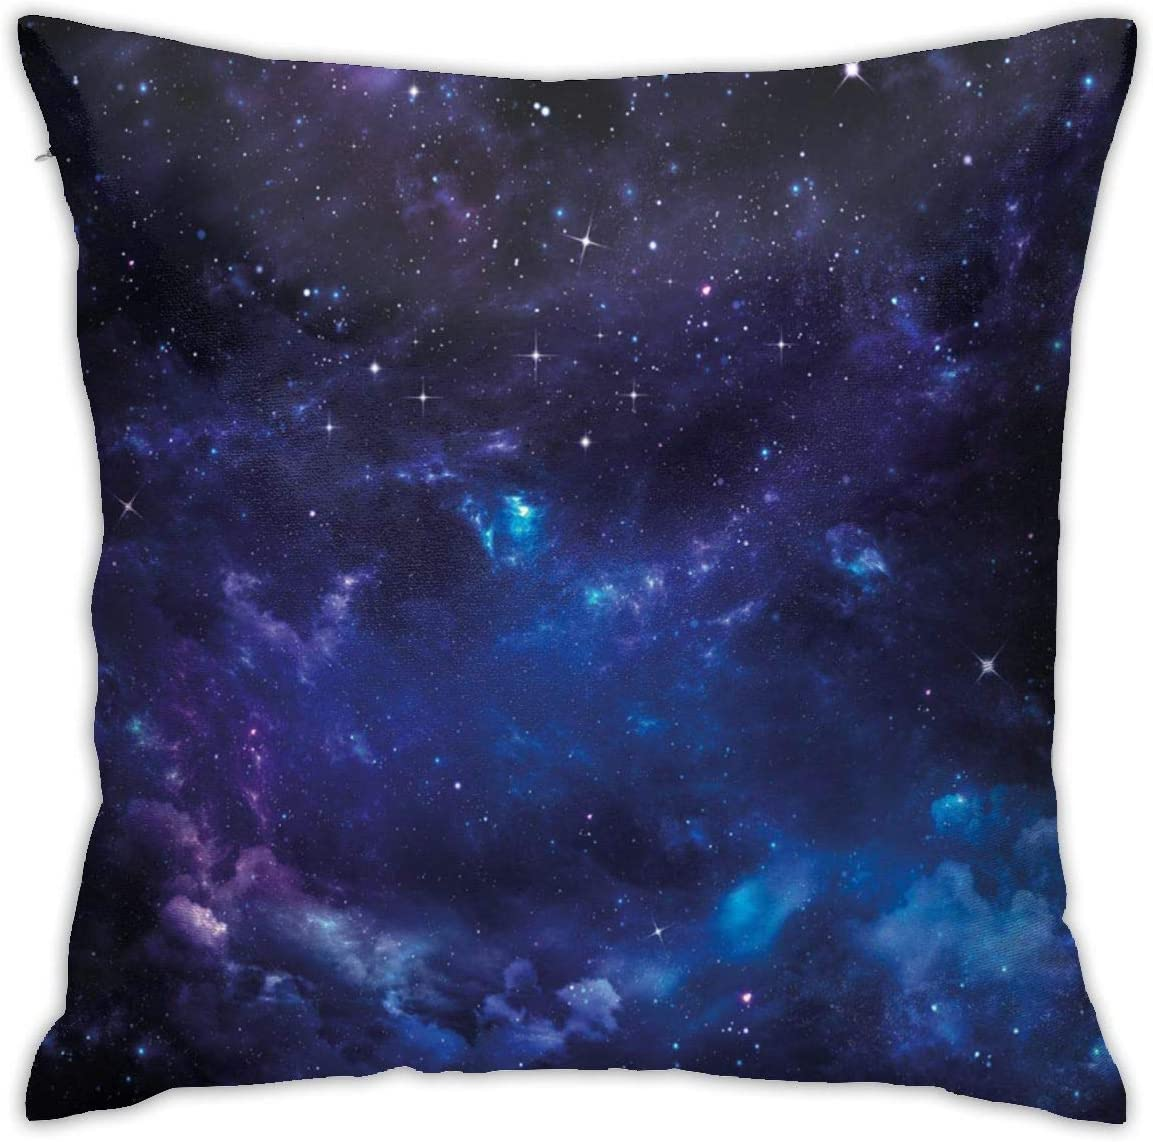 Judascepeda Home Pillowcase Sky Space Night Time Universe Stars and Nebulas Distant Parts of Galaxy Purple Charcoal Grey and Blue Decor Throw Pillow Cushion Cover with 18 X 18 Inches